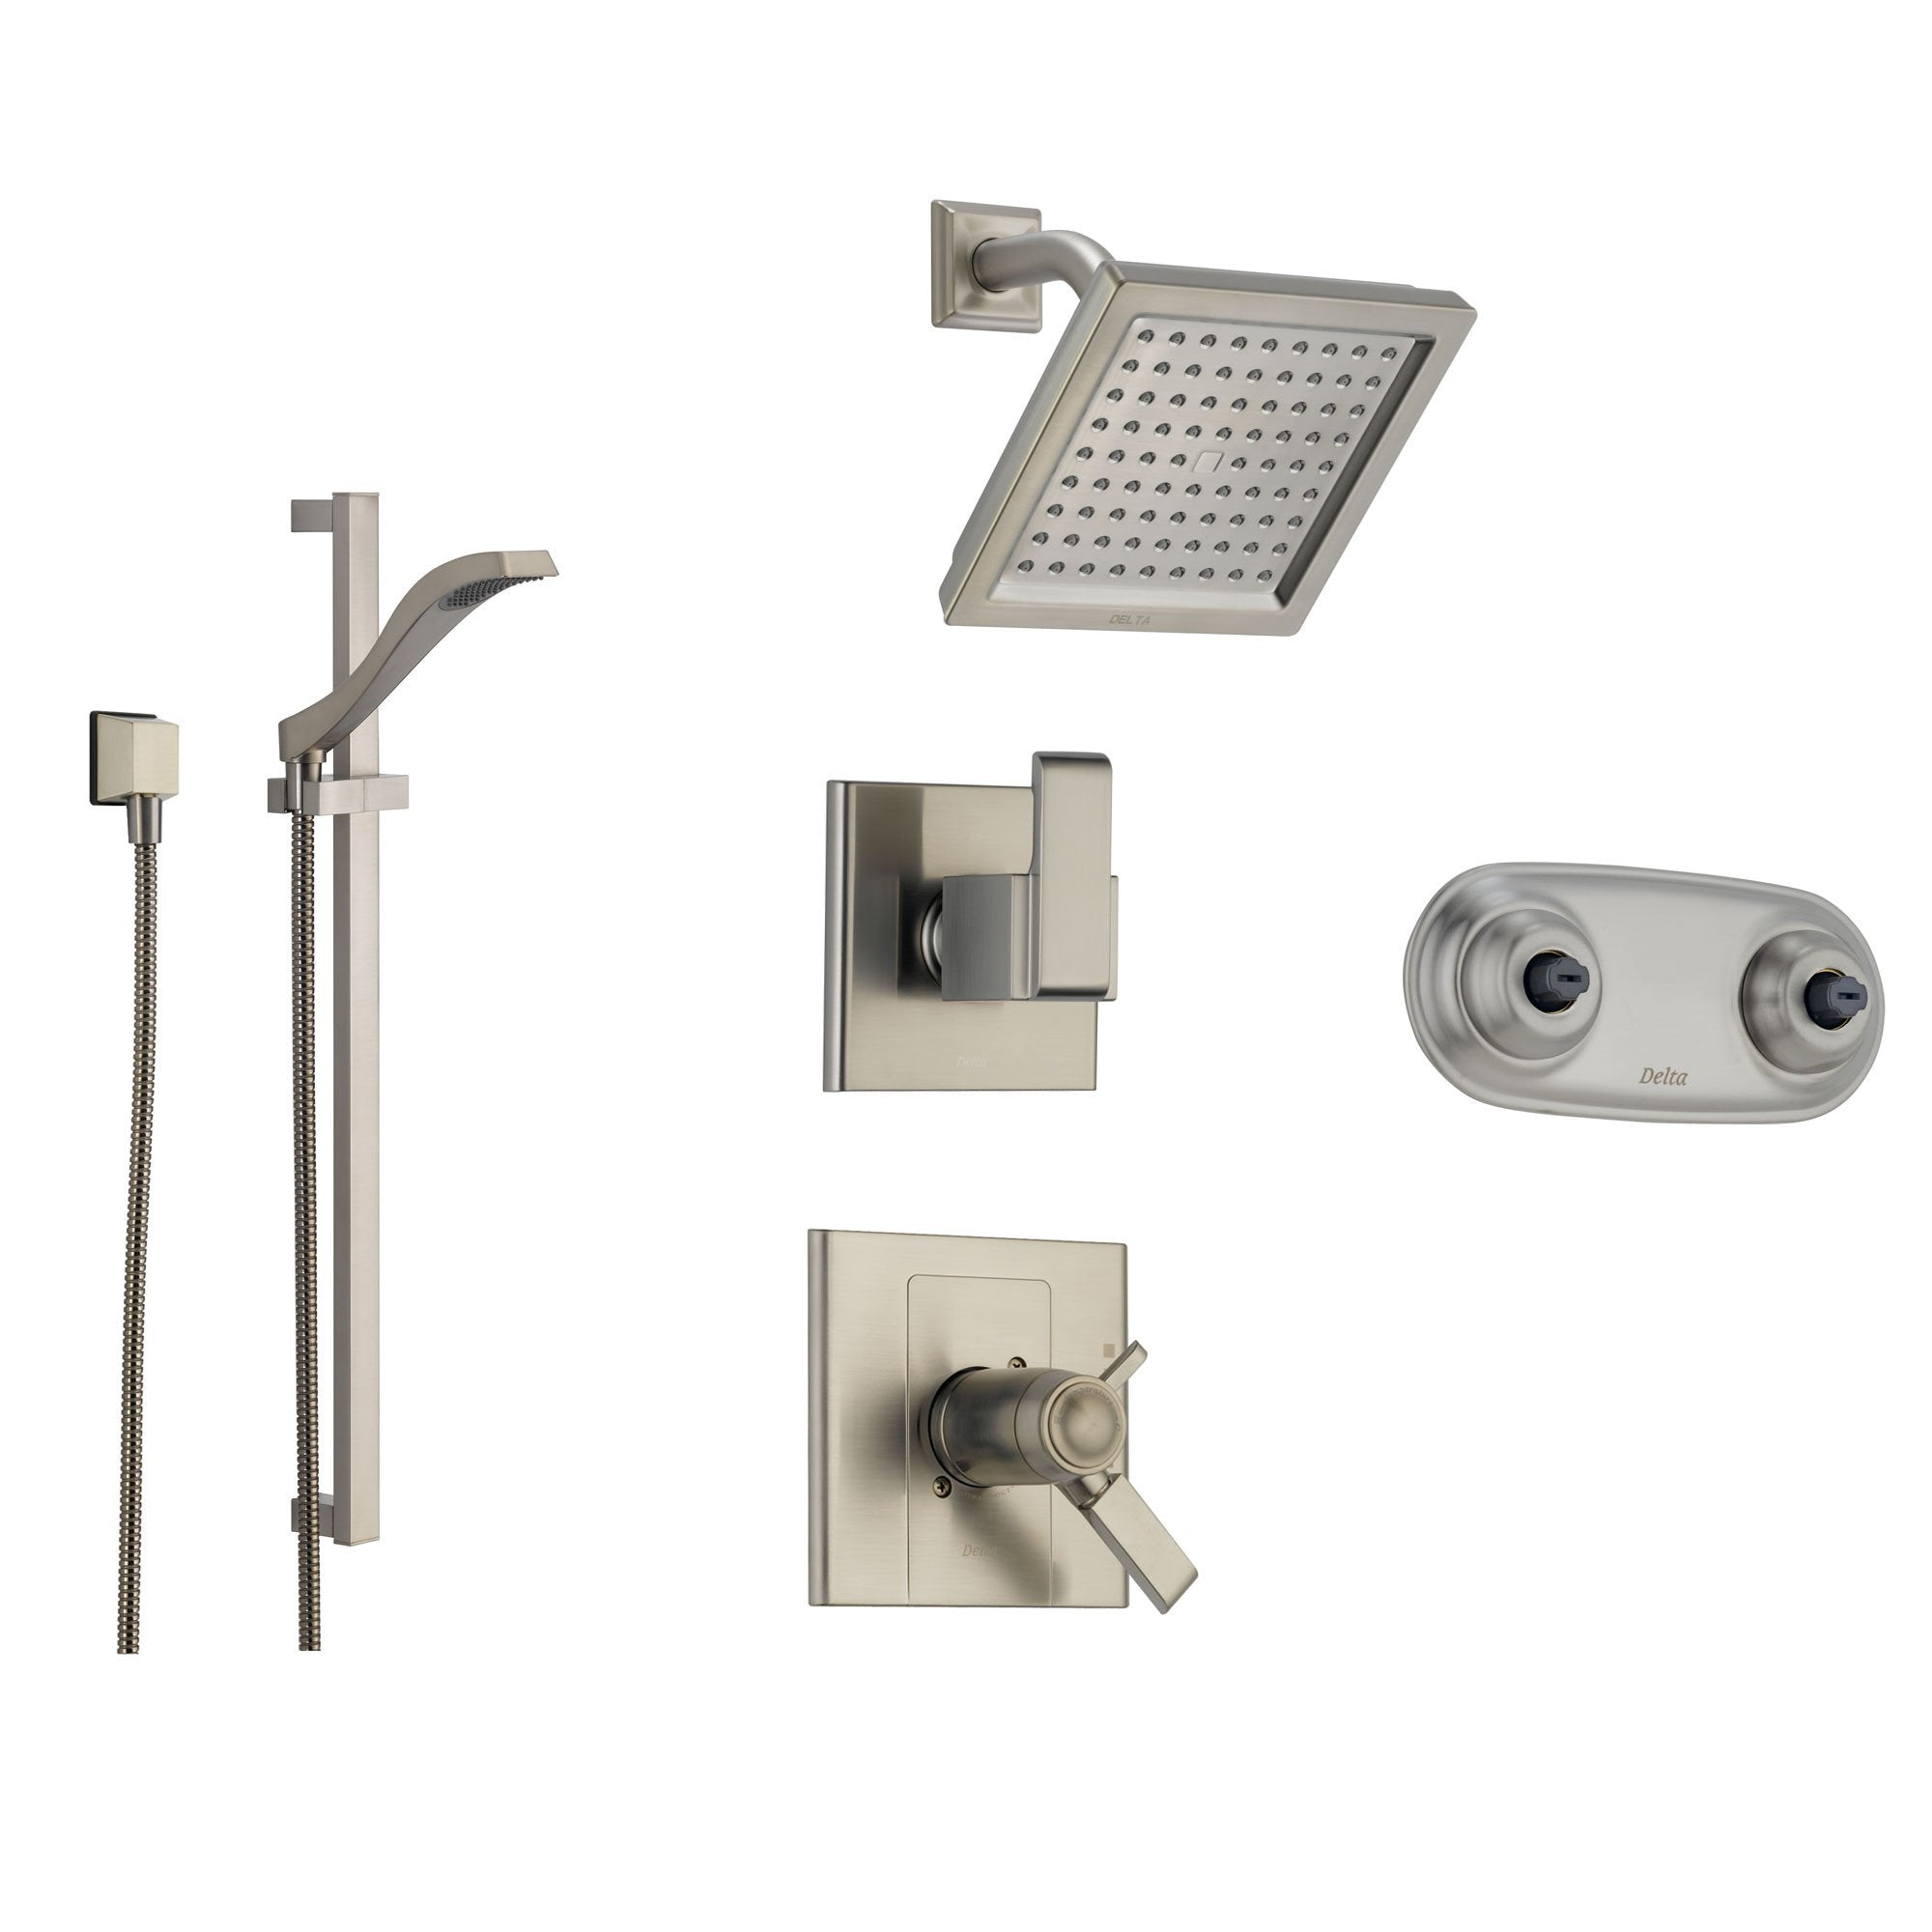 Delta Arzo Stainless Steel Shower System with Thermostatic Shower Handle, 6-setting Diverter, Square Showerhead, Modern Hand Held Shower, and Dual Body Spray Plate SS17T8693SS